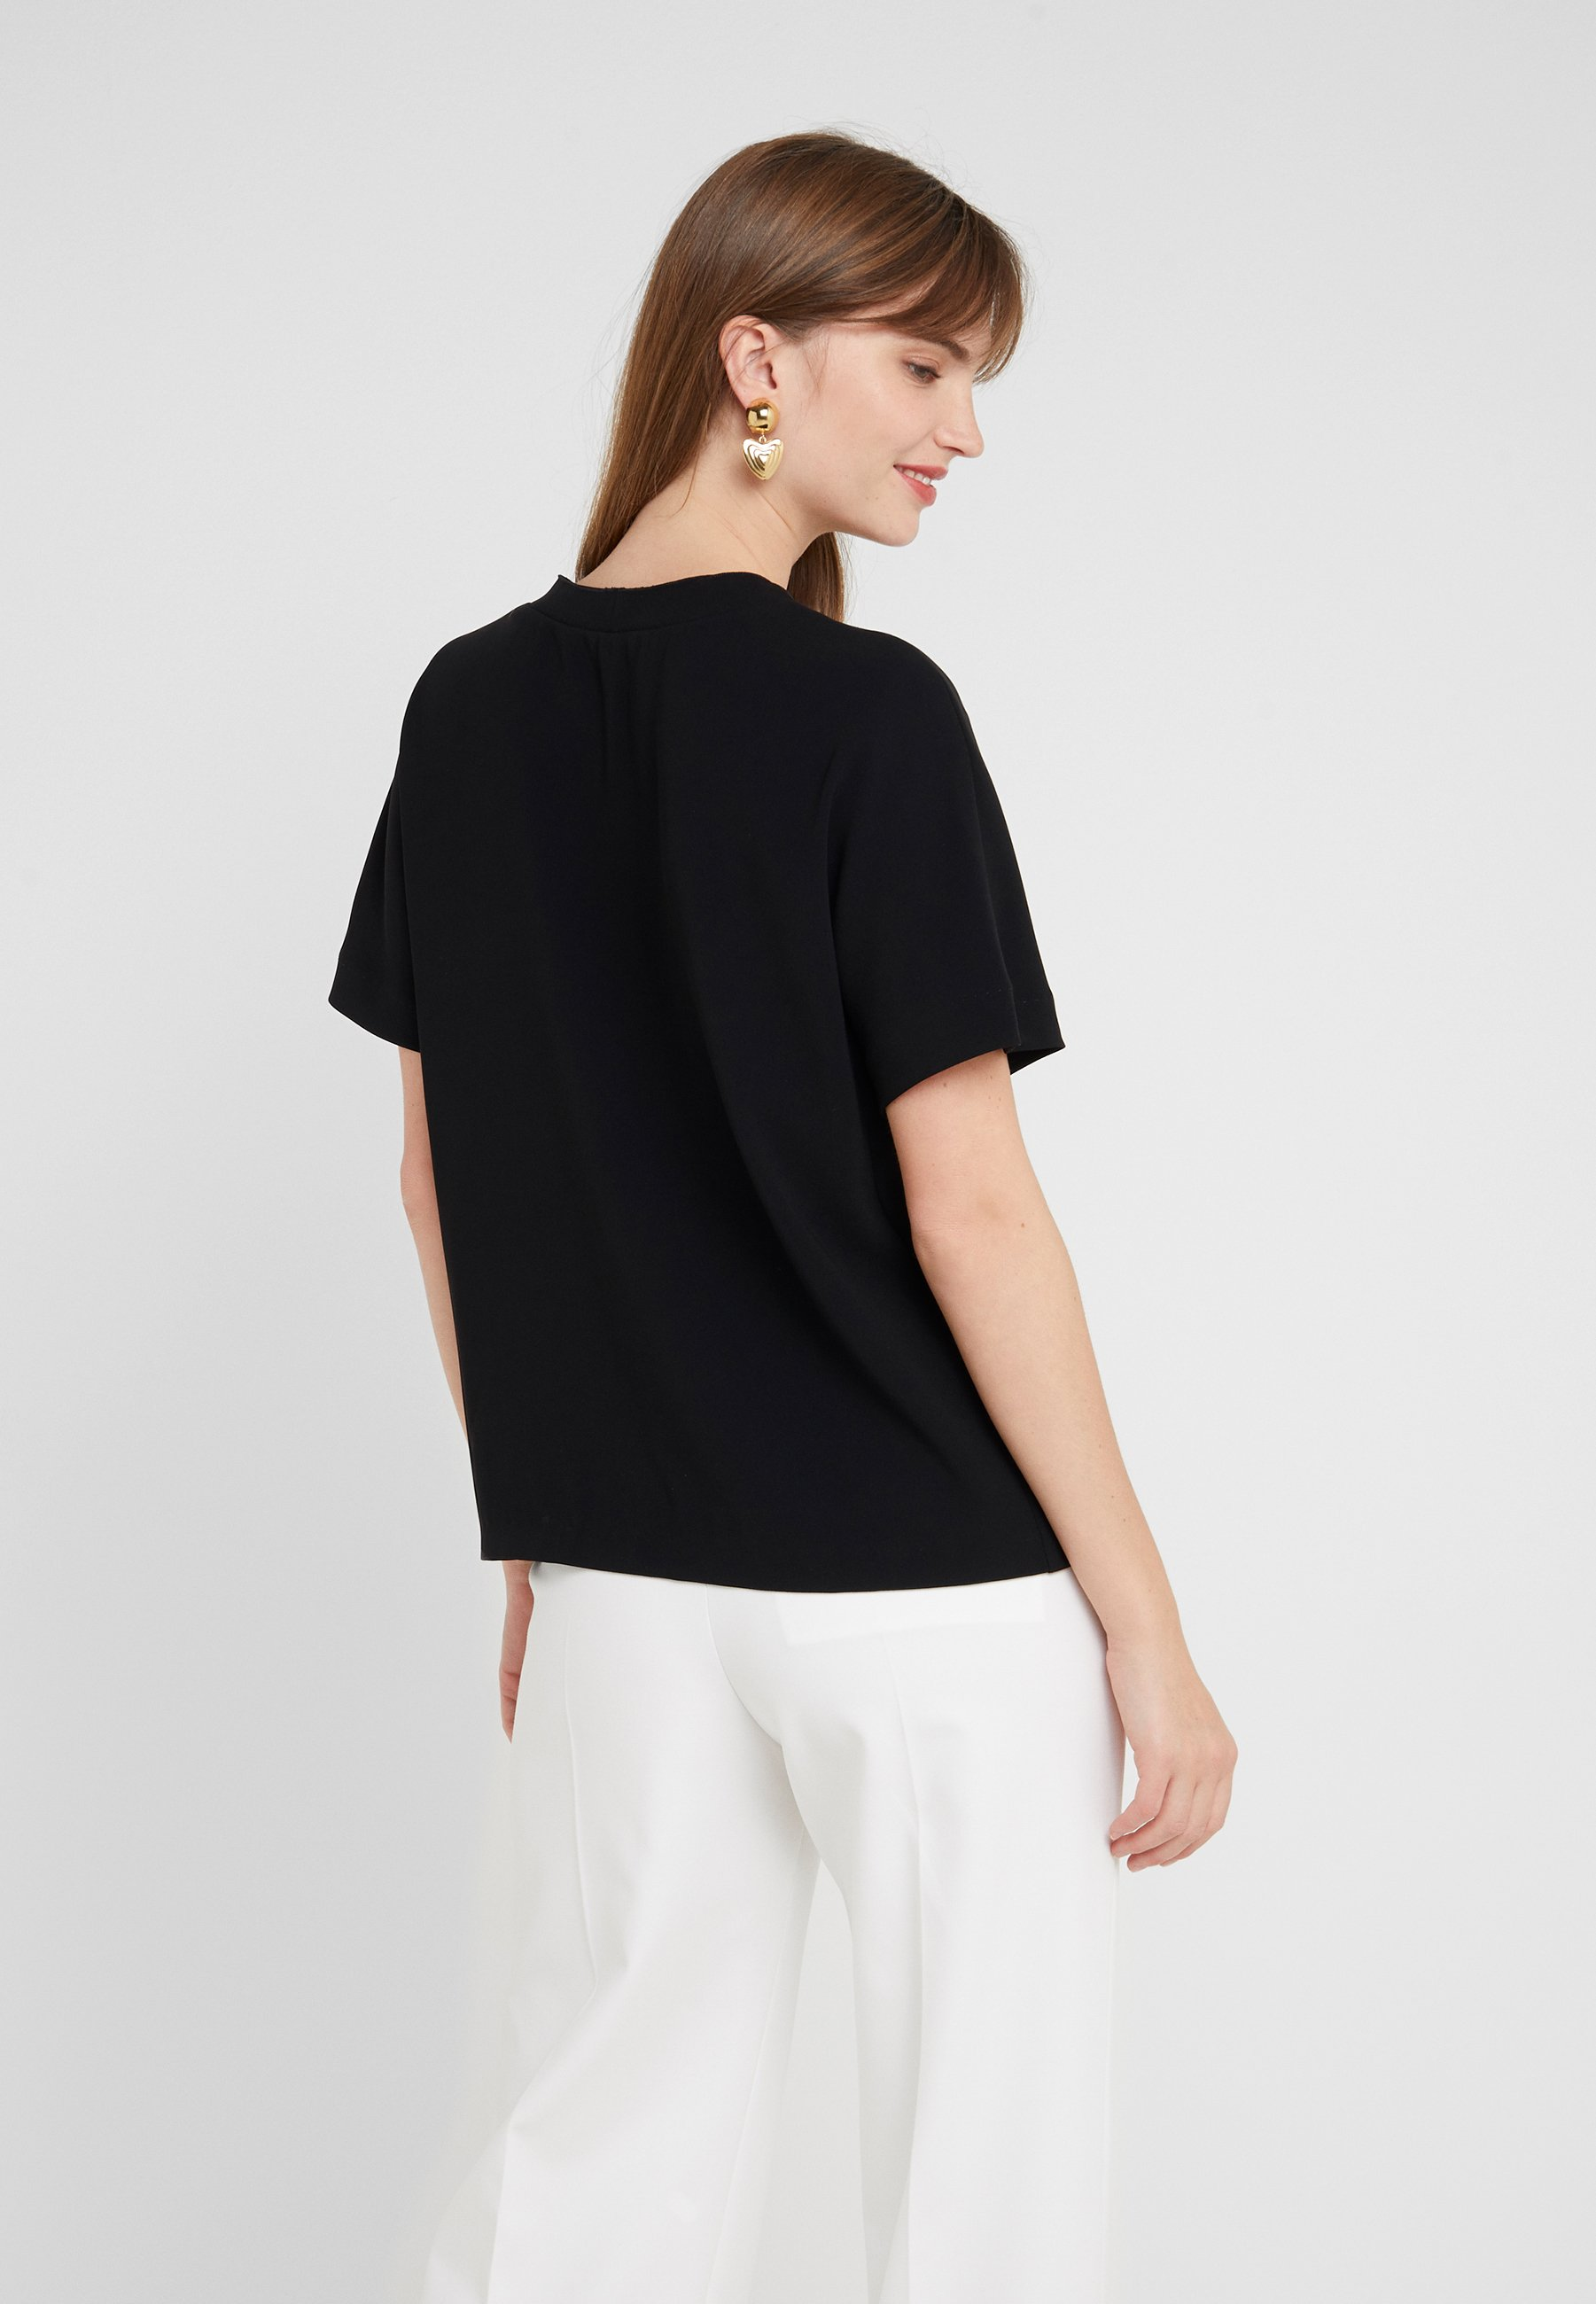 Marc Cain Bluse - Black Friday